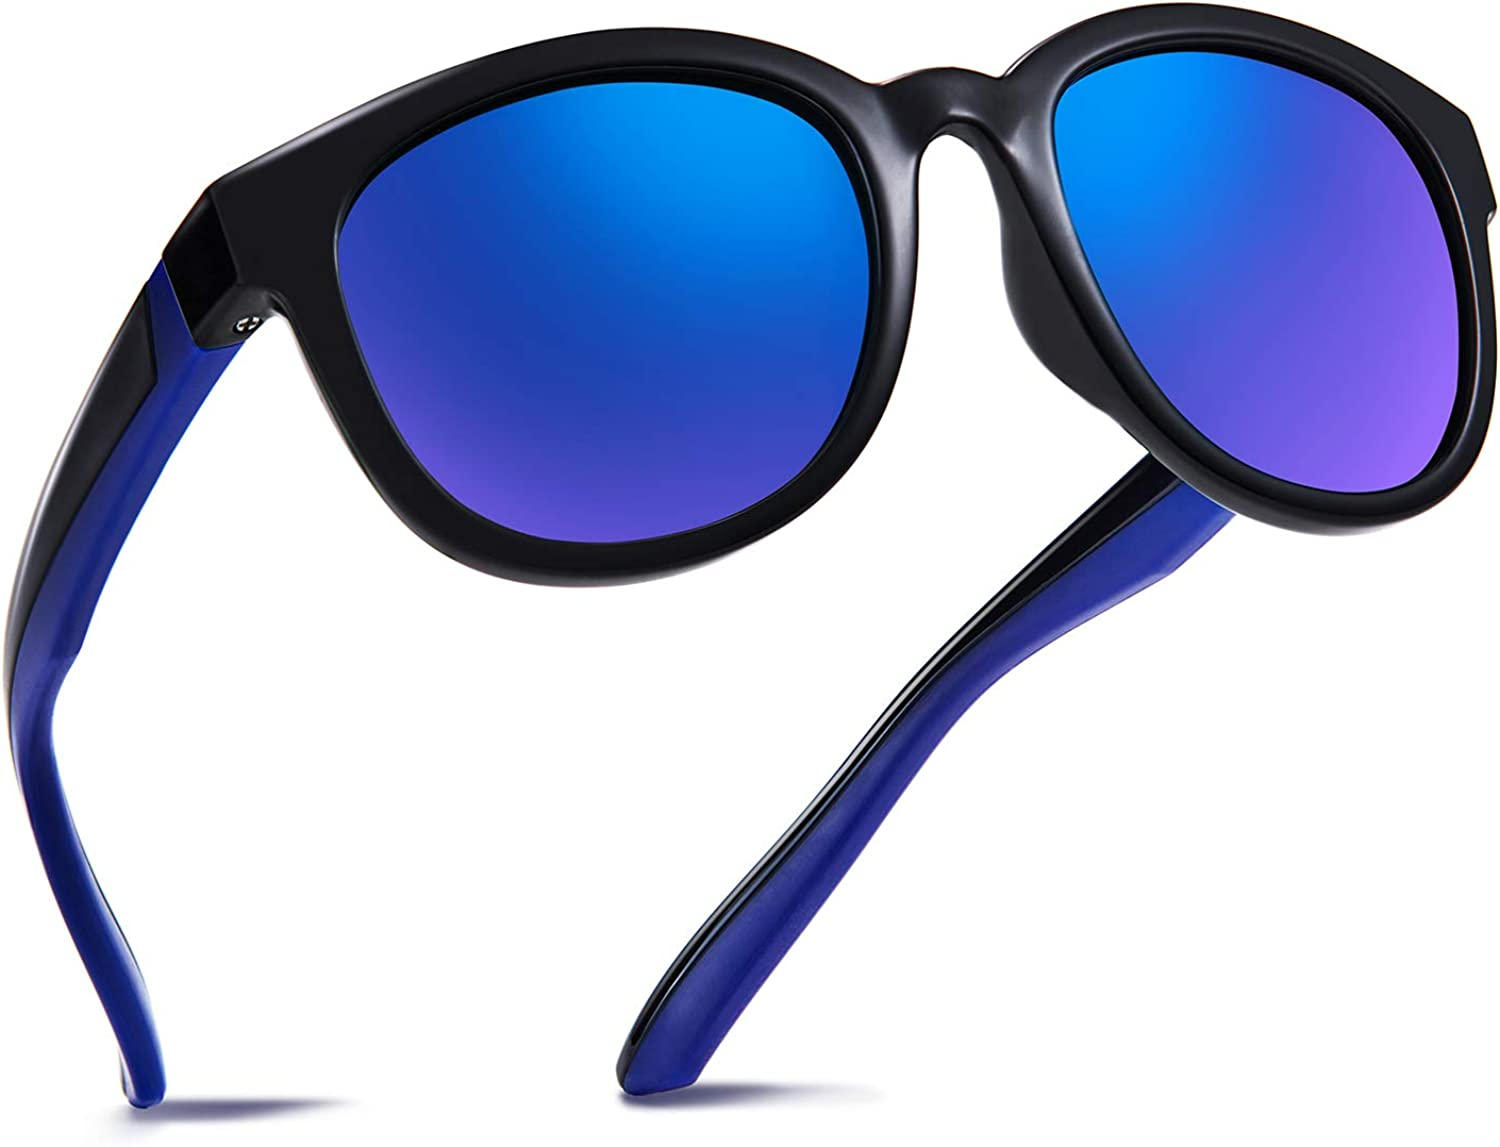 Safe UV400 Sun Filter Protection KIDDUS Sunglasses ULTRA FLEXIBLE for Children Toddler Girl Boy Made of Rubber From 2 years old Unbreakable Adjustable and Detachable Band OUTDOOR